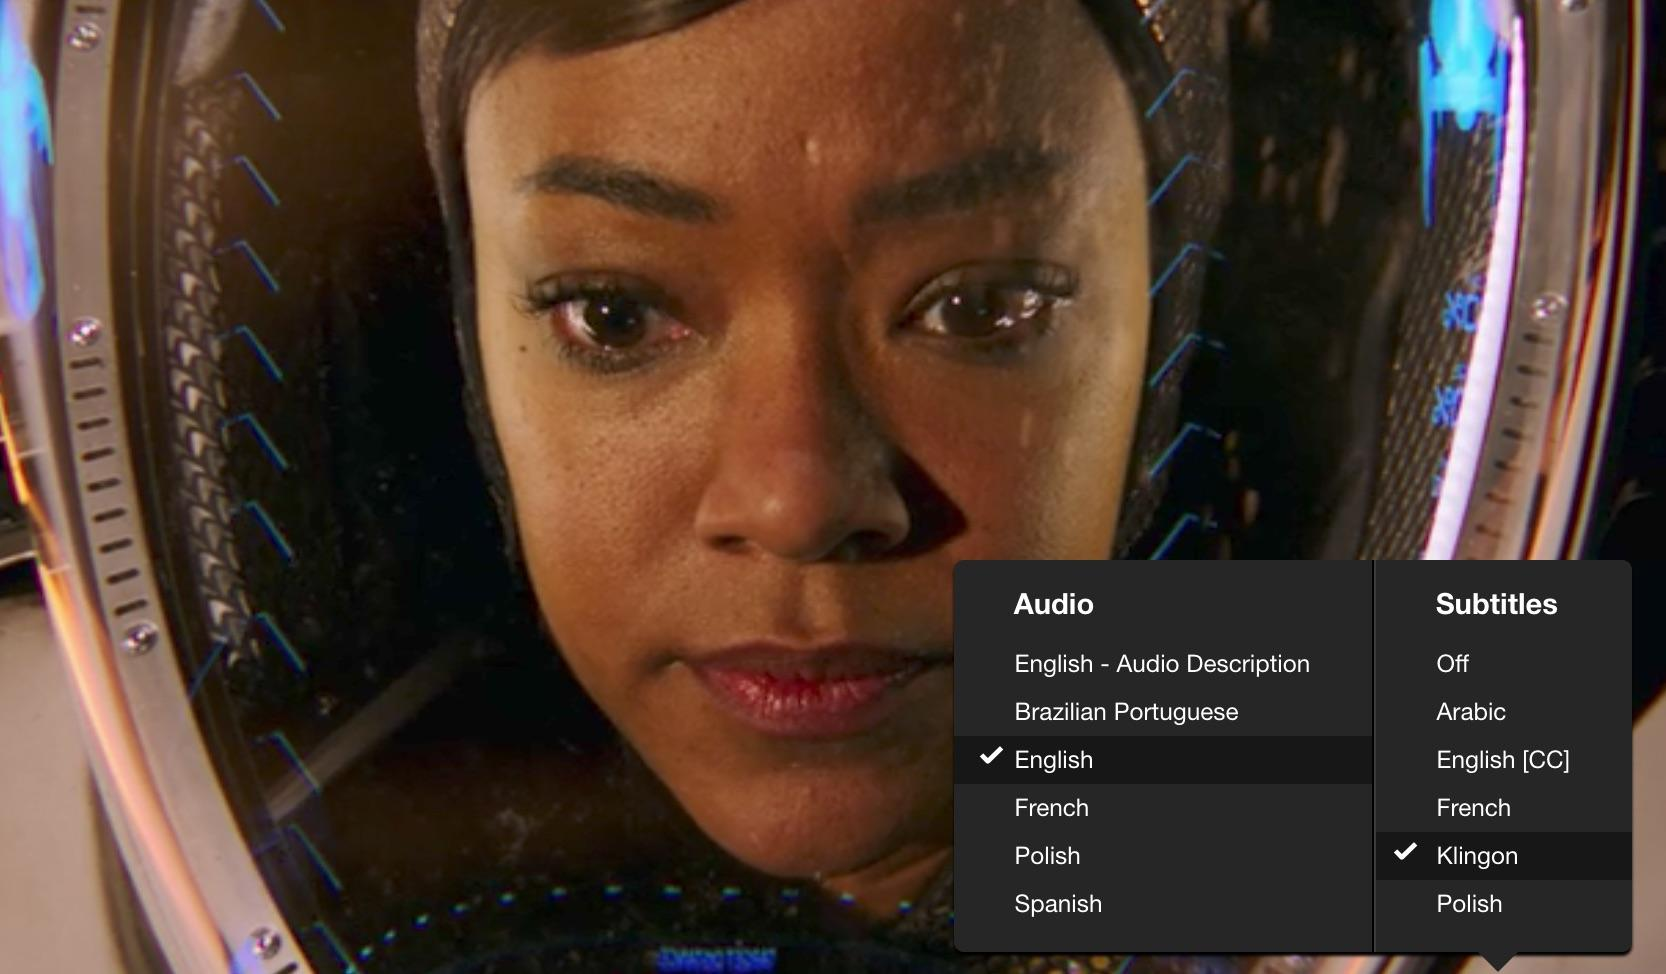 Star Trek: Discovery: Netflix adds Klingon subtitle feature